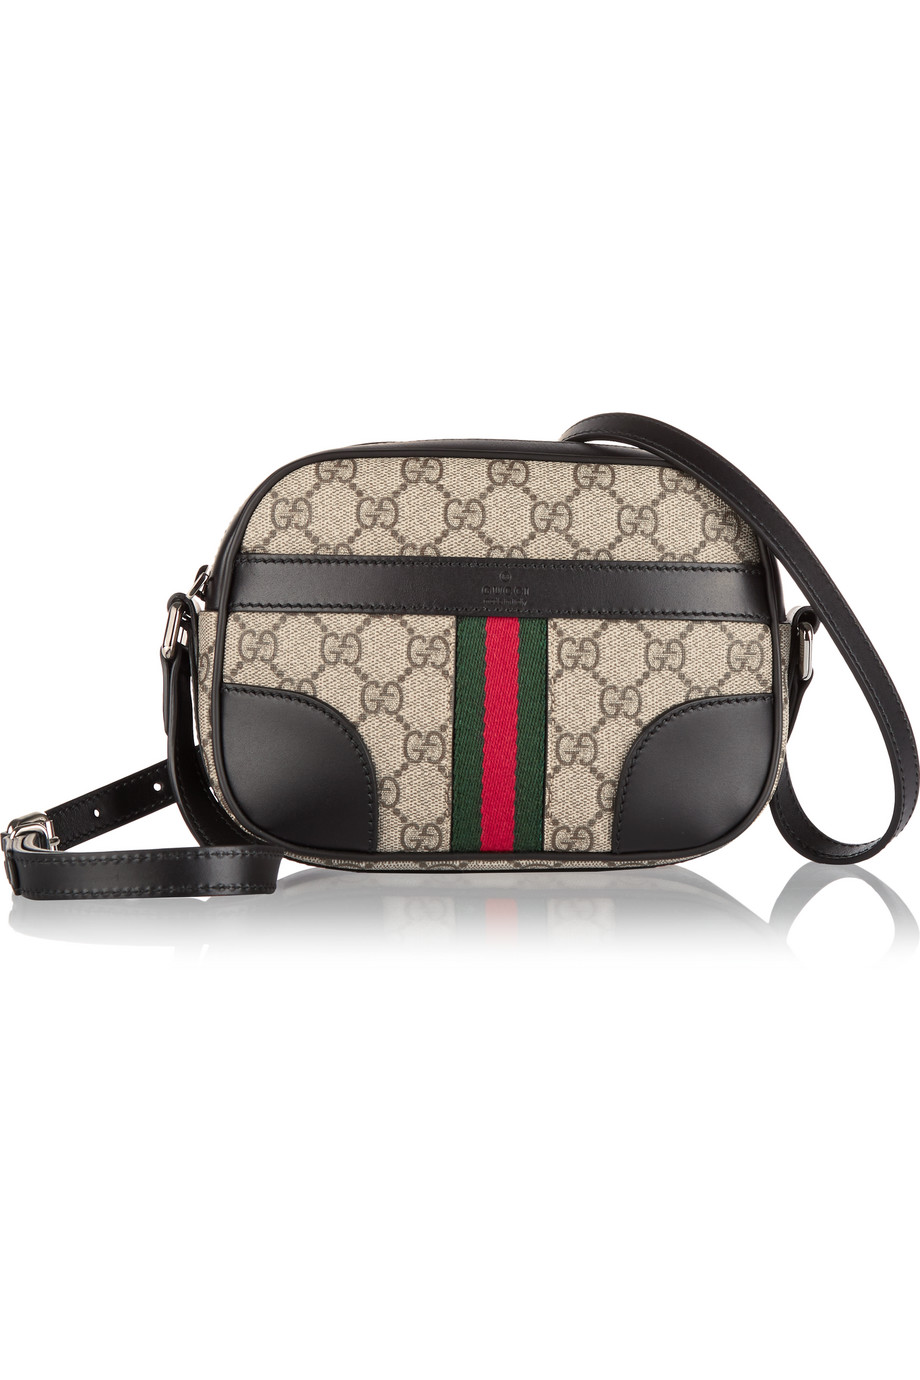 Gucci Bright Supreme Leather-Trimmed Coated Canvas Shoulder Bag, Gray, Women's